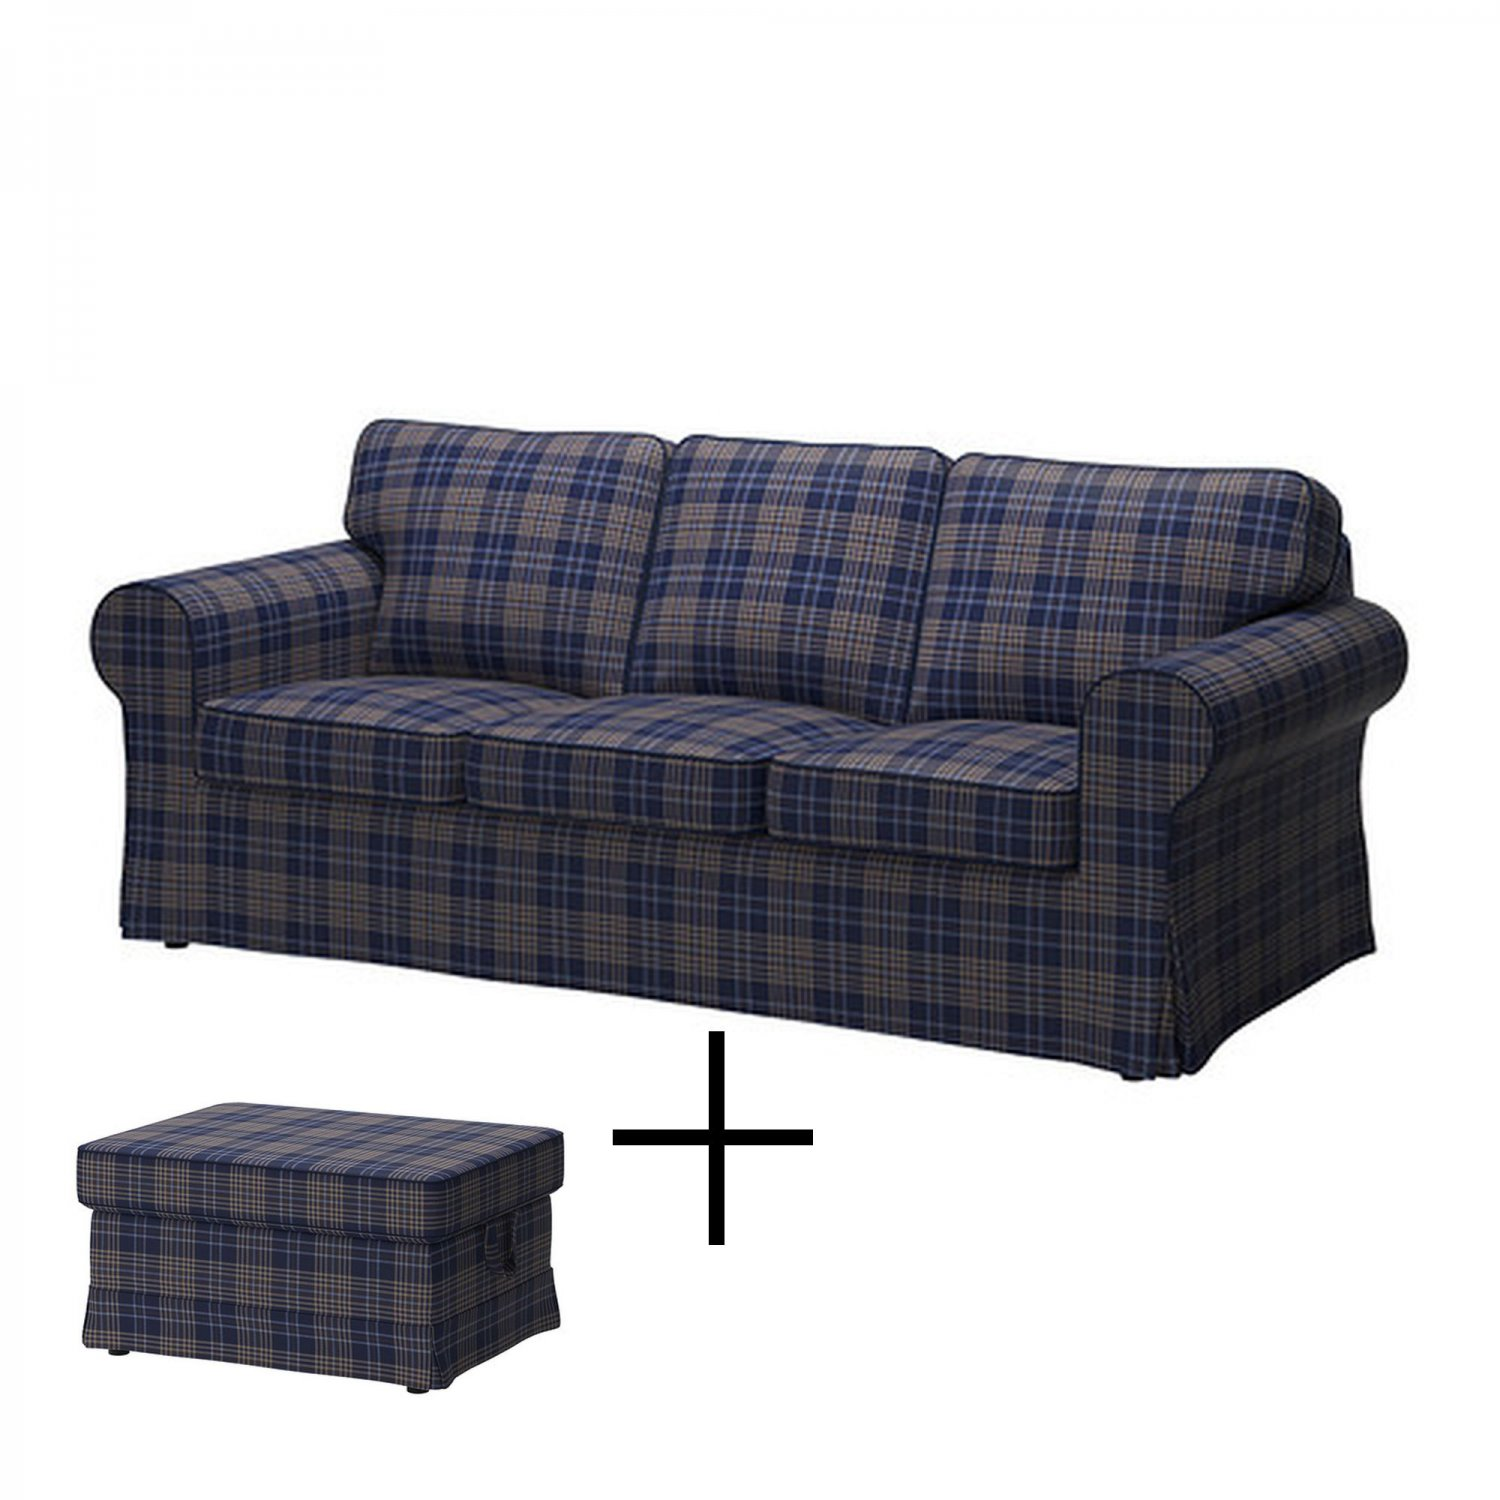 Ikea Ektorp 3 Seat Sofa And Footstool Cover Slipcover Rutna Multi Plaid Blue